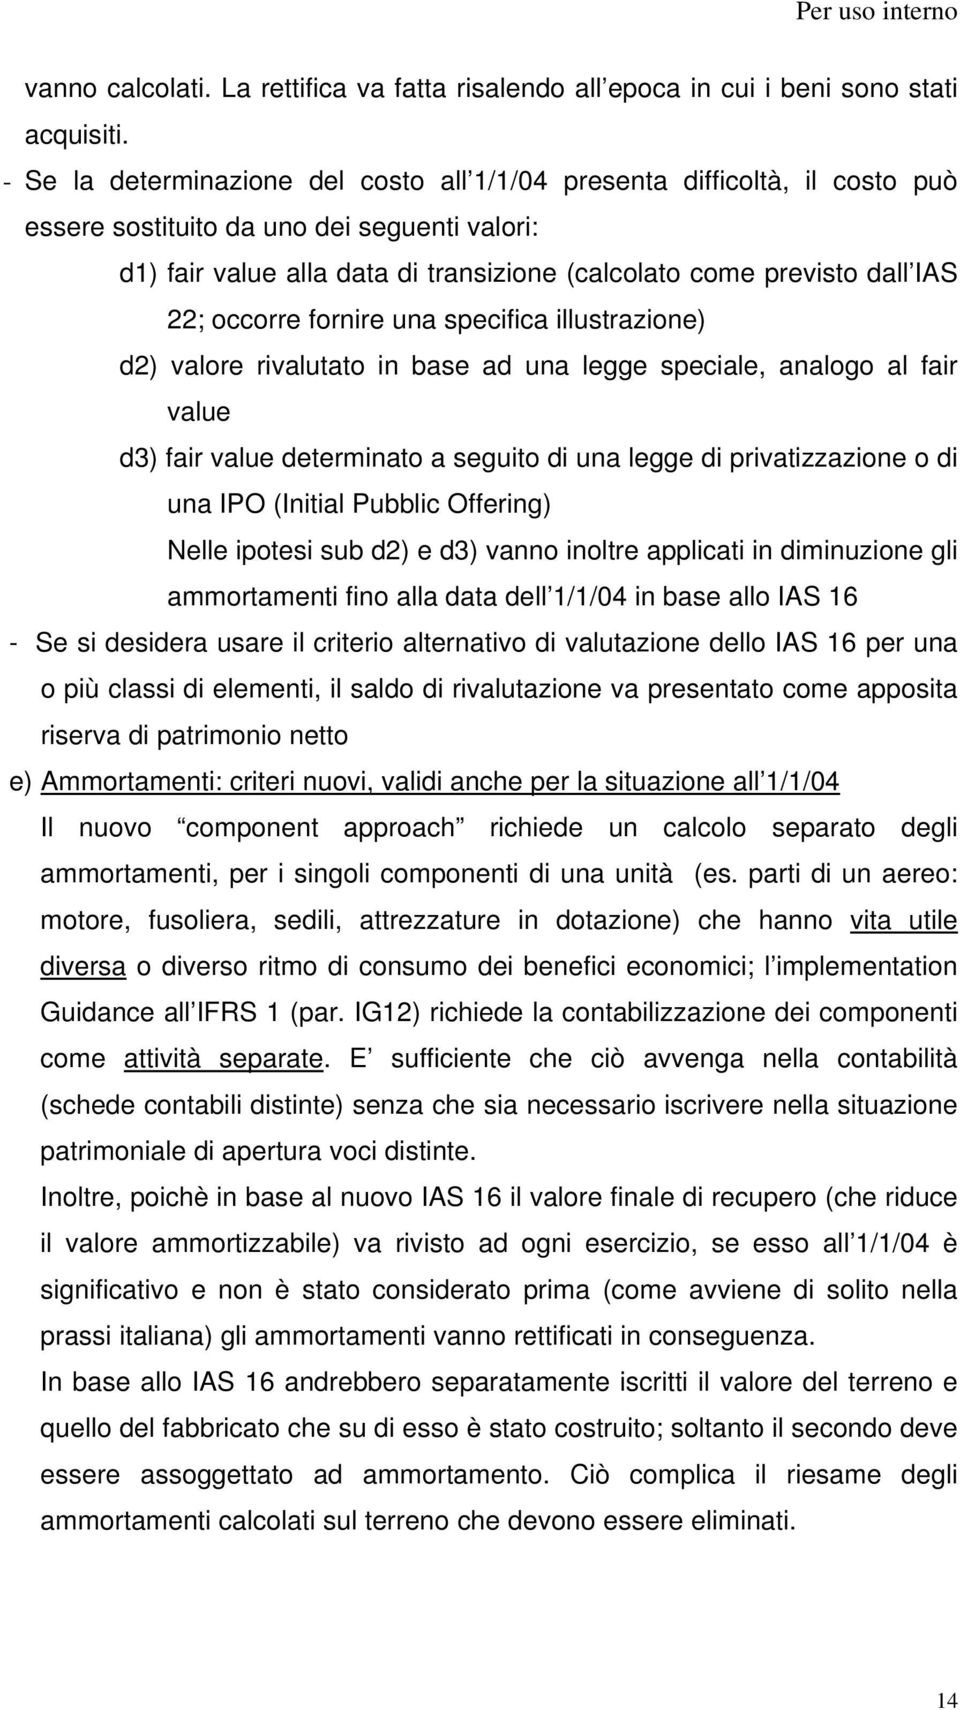 22; occorre fornire una specifica illustrazione) d2) valore rivalutato in base ad una legge speciale, analogo al fair value d3) fair value determinato a seguito di una legge di privatizzazione o di